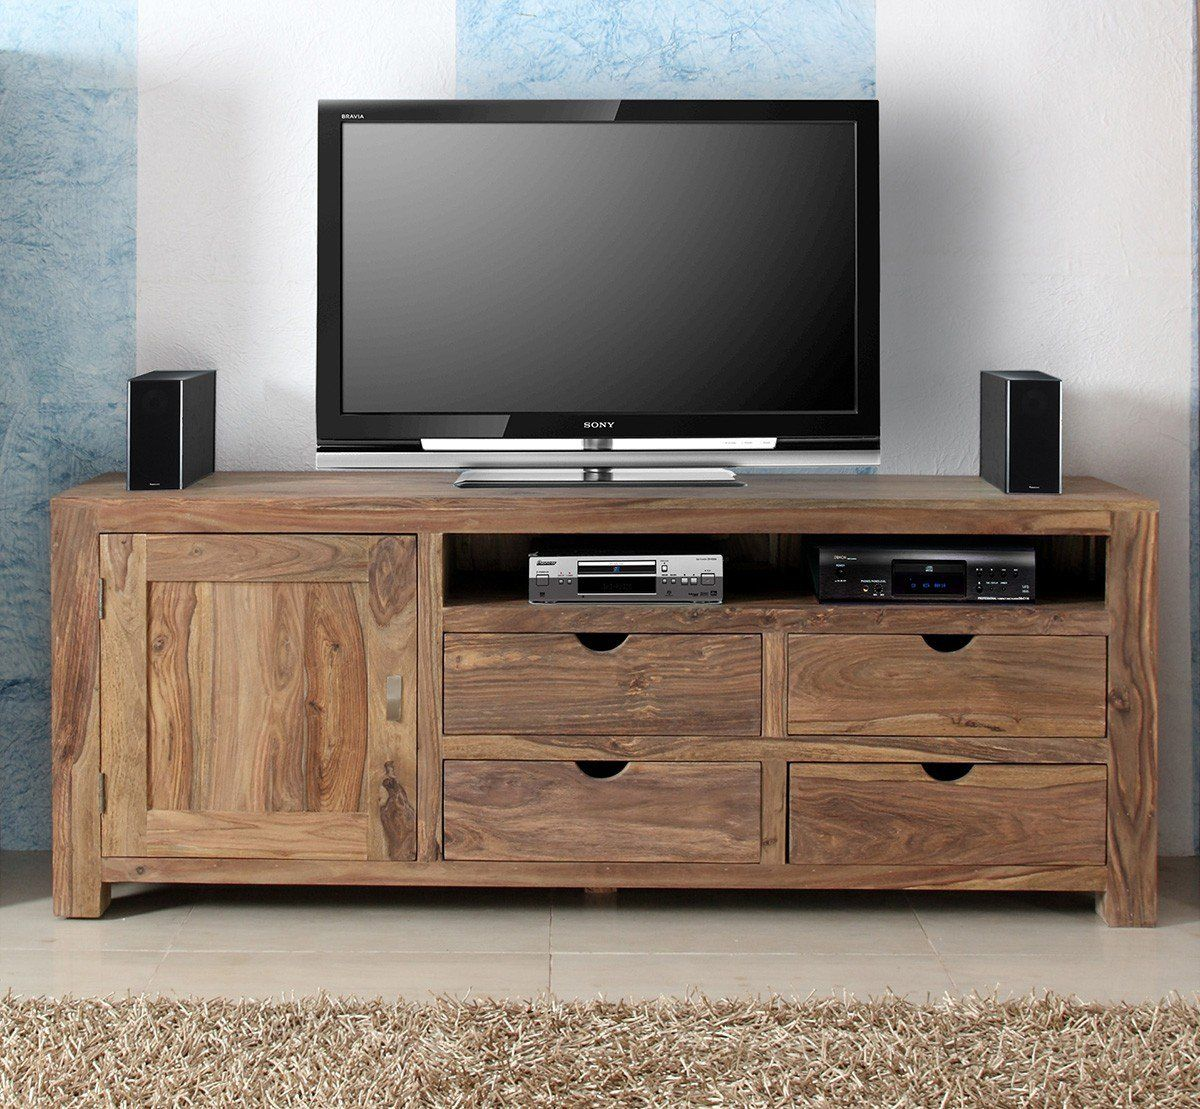 Designer Tv Möbel Billig Tv Möbel 60 Cm Hoch Wooden Furnishings Tv Cabinets